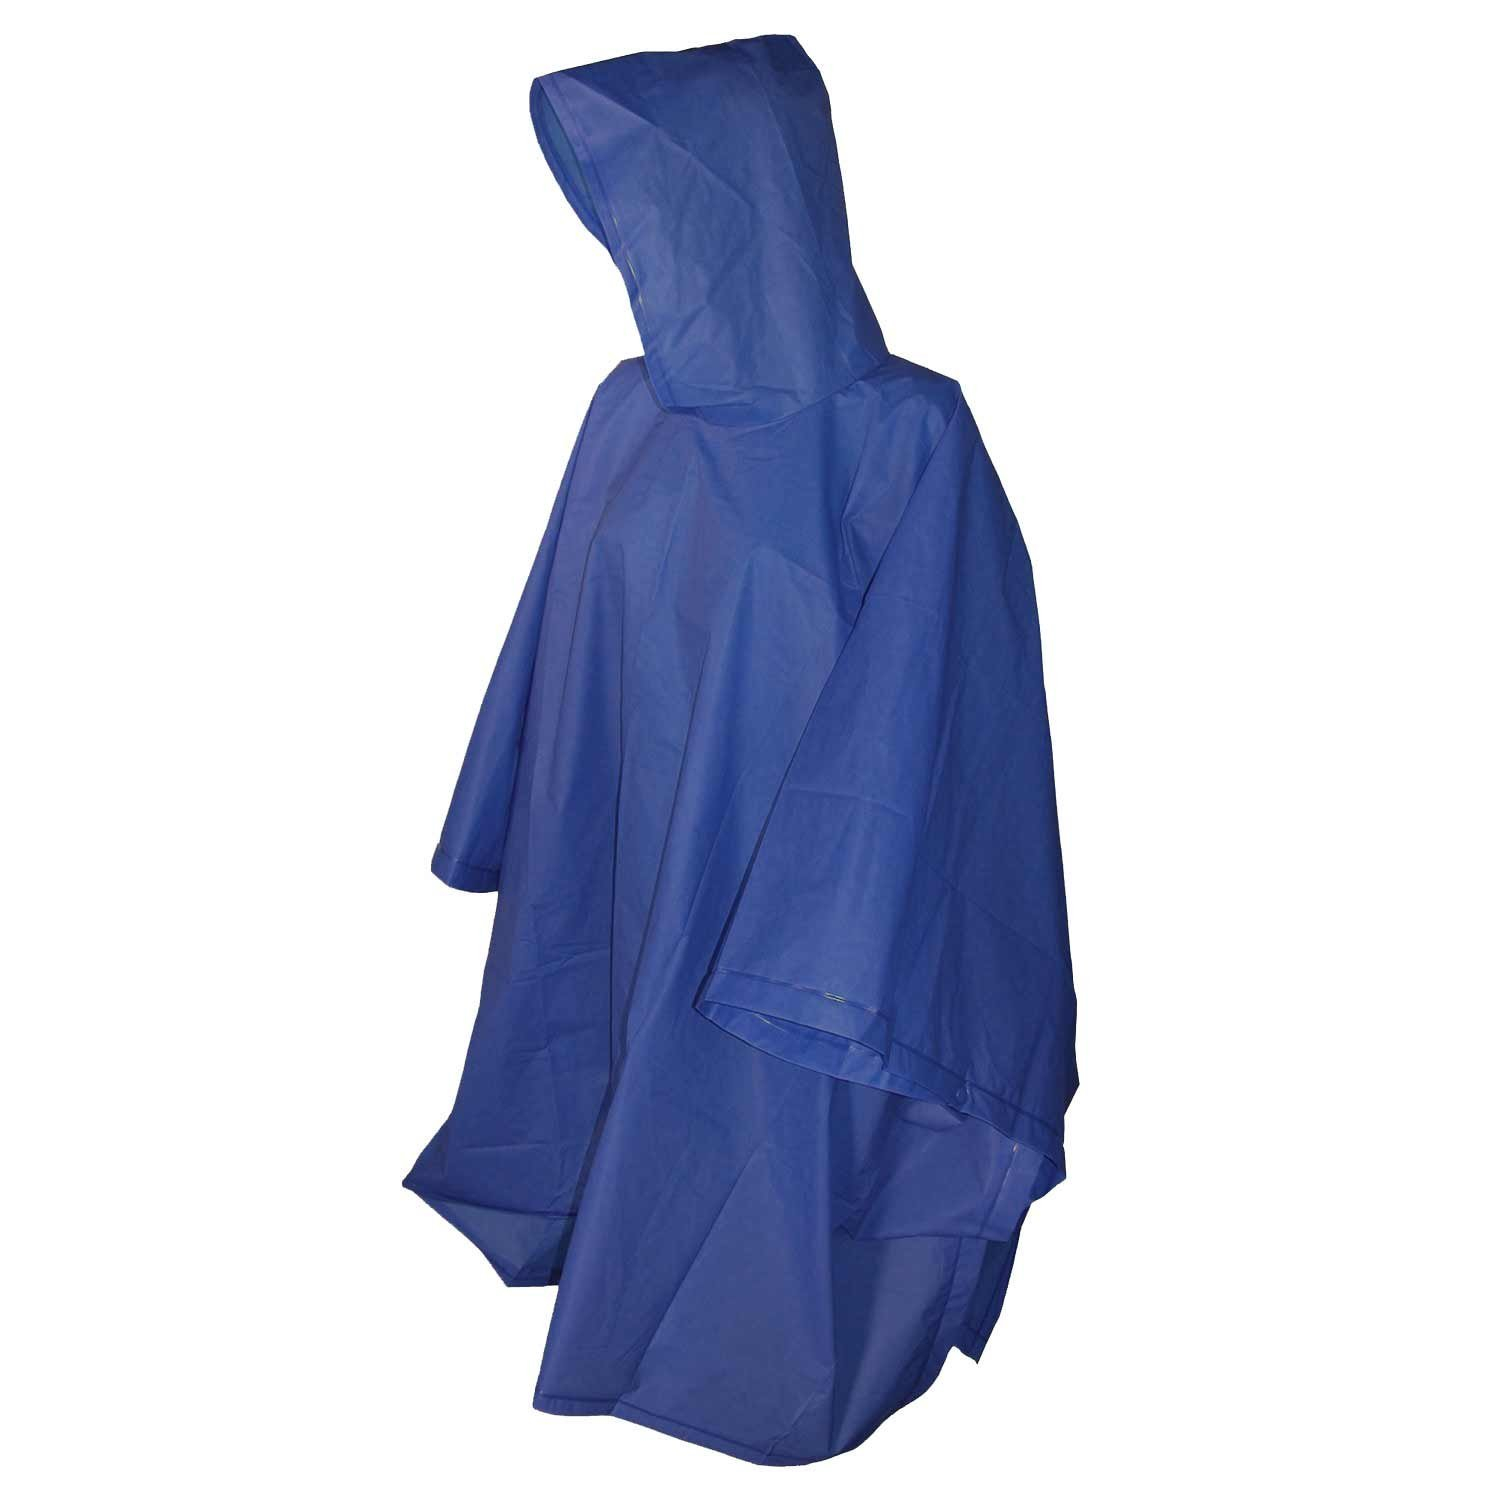 Raines Children's Emergency Poncho with Built In Hood, One Size Fits Most, Blue, 3-pack